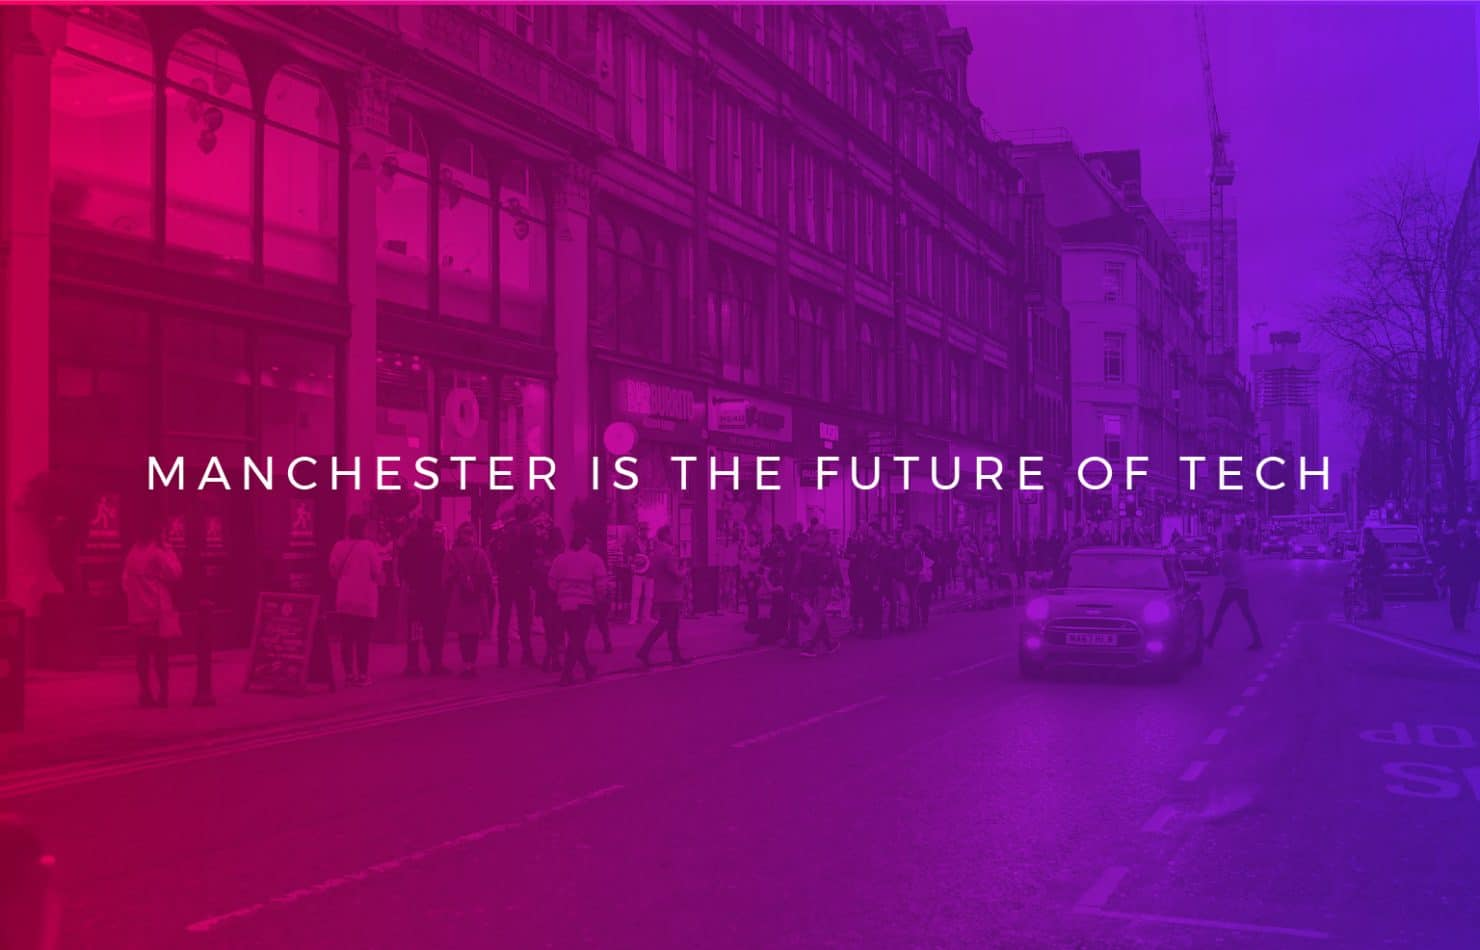 Five reasons why Manchester is the future of tech